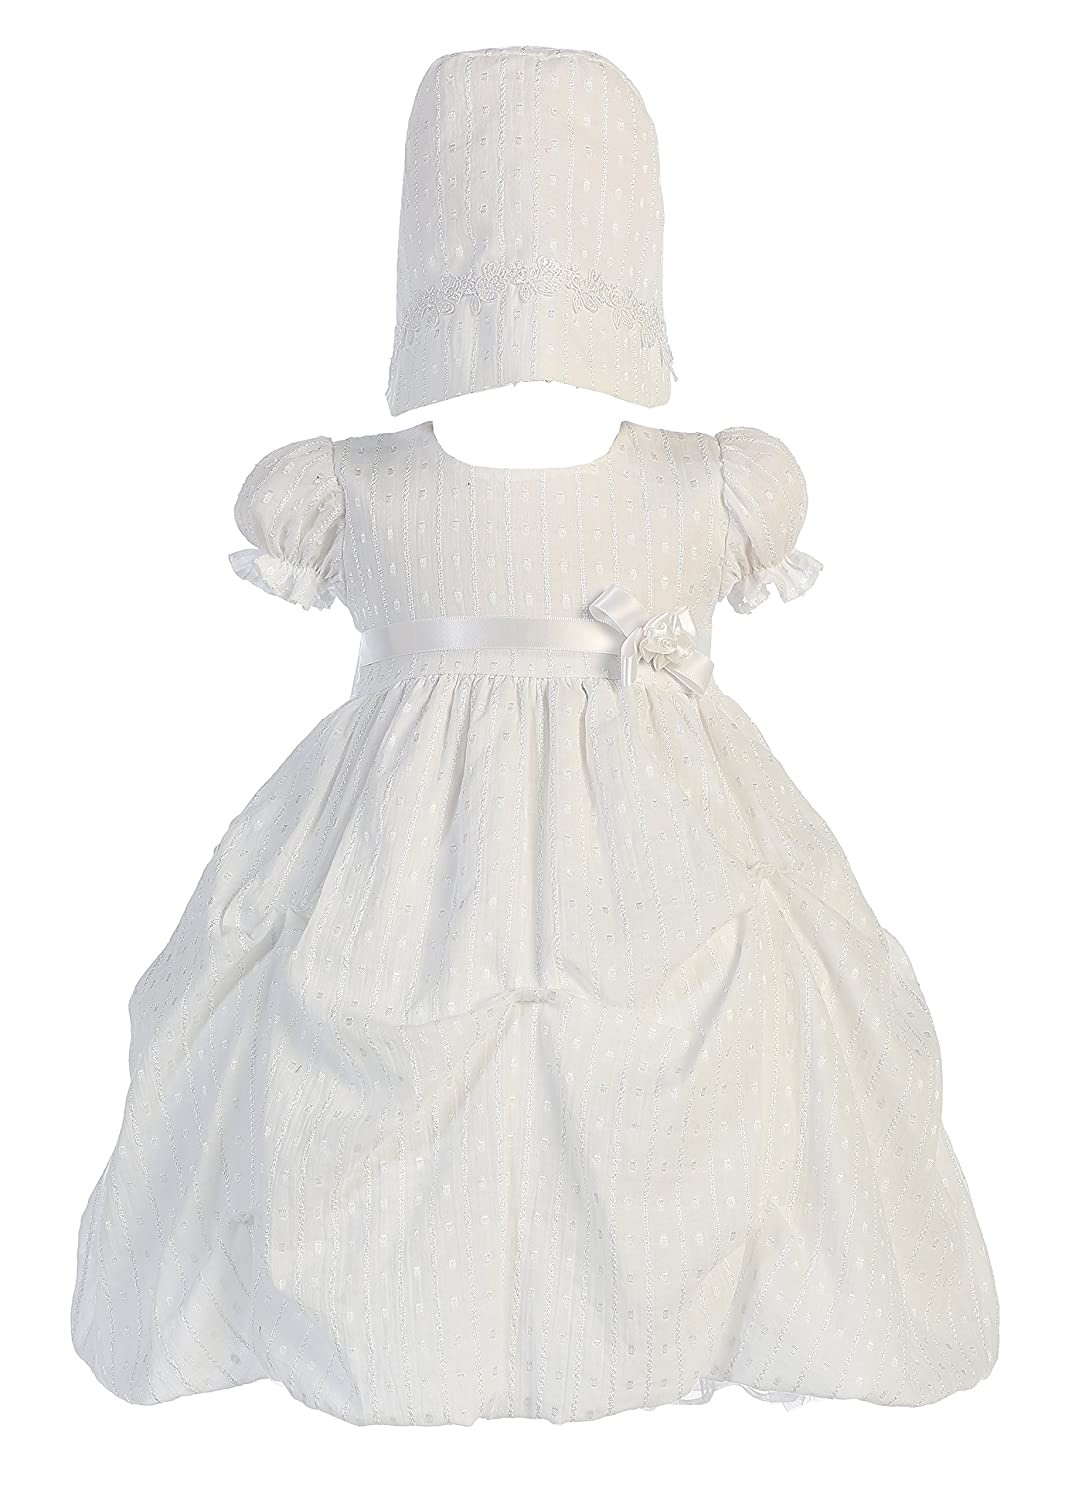 Swea Pea & Lilli Baby Girl White Poly-Cotton Jacquard Gown Christening Baptism Hat Set